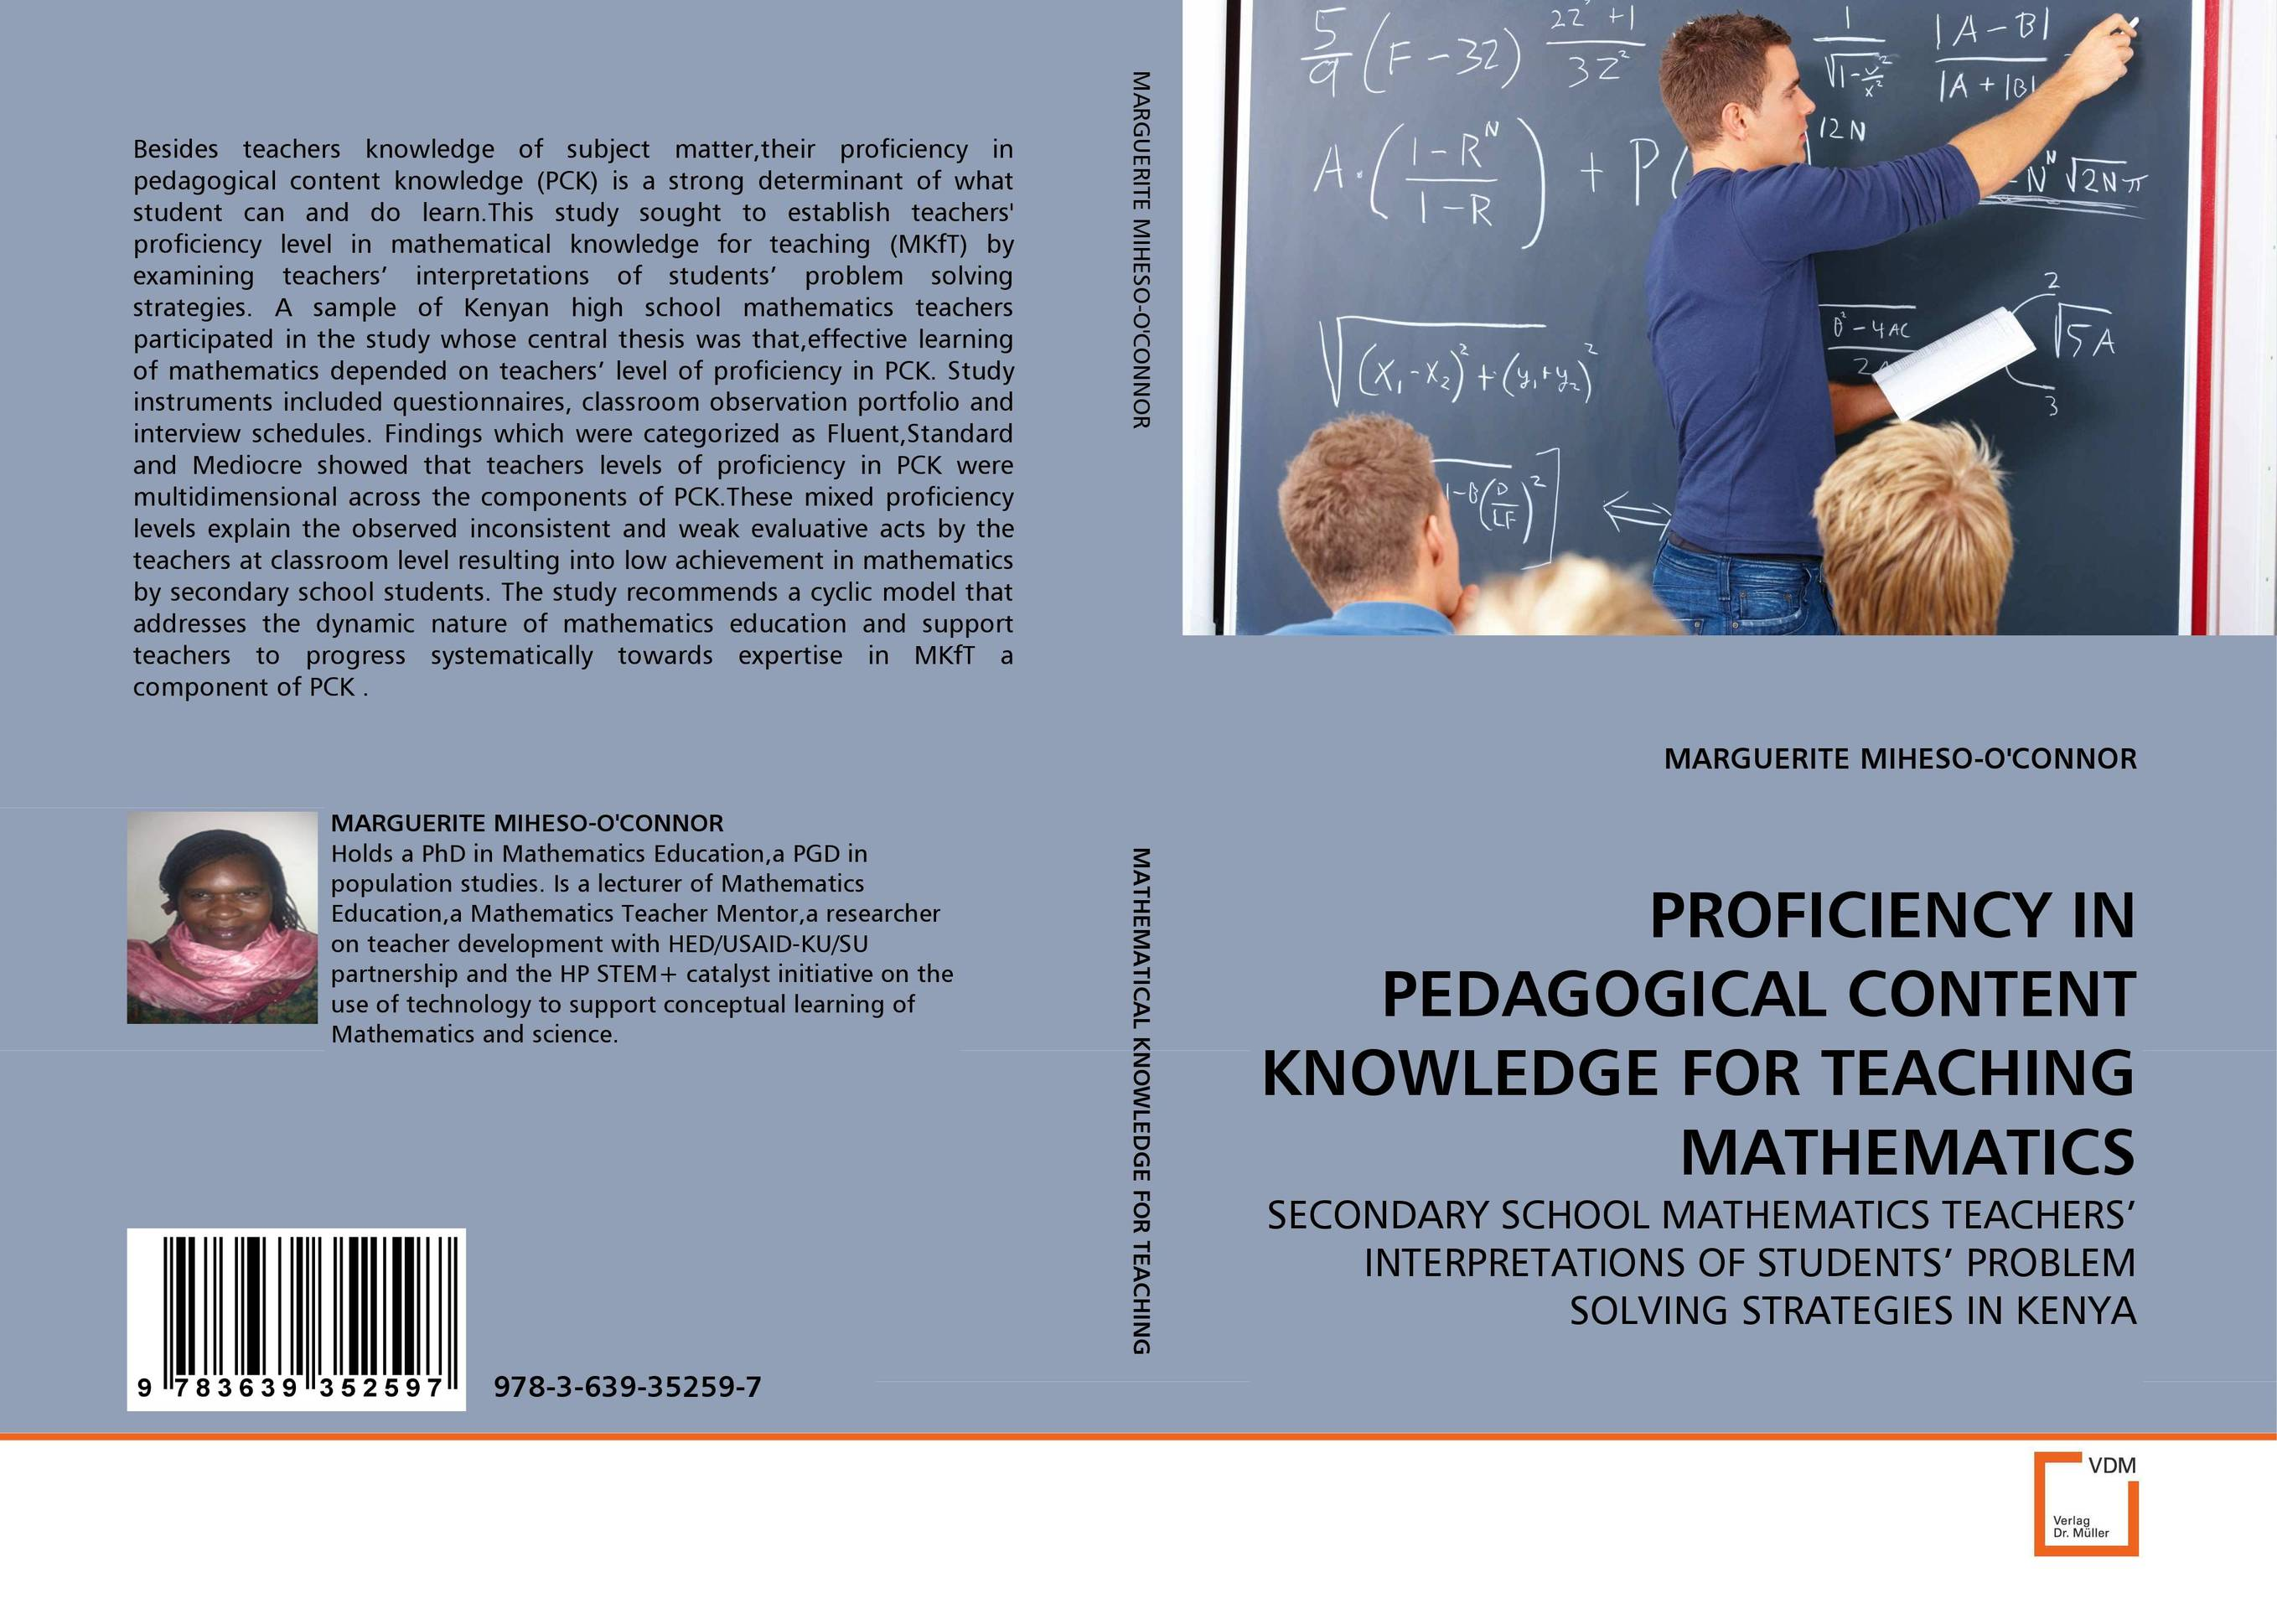 PROFICIENCY IN PEDAGOGICAL CONTENT KNOWLEDGE FOR TEACHING MATHEMATICS manage enterprise knowledge systematically